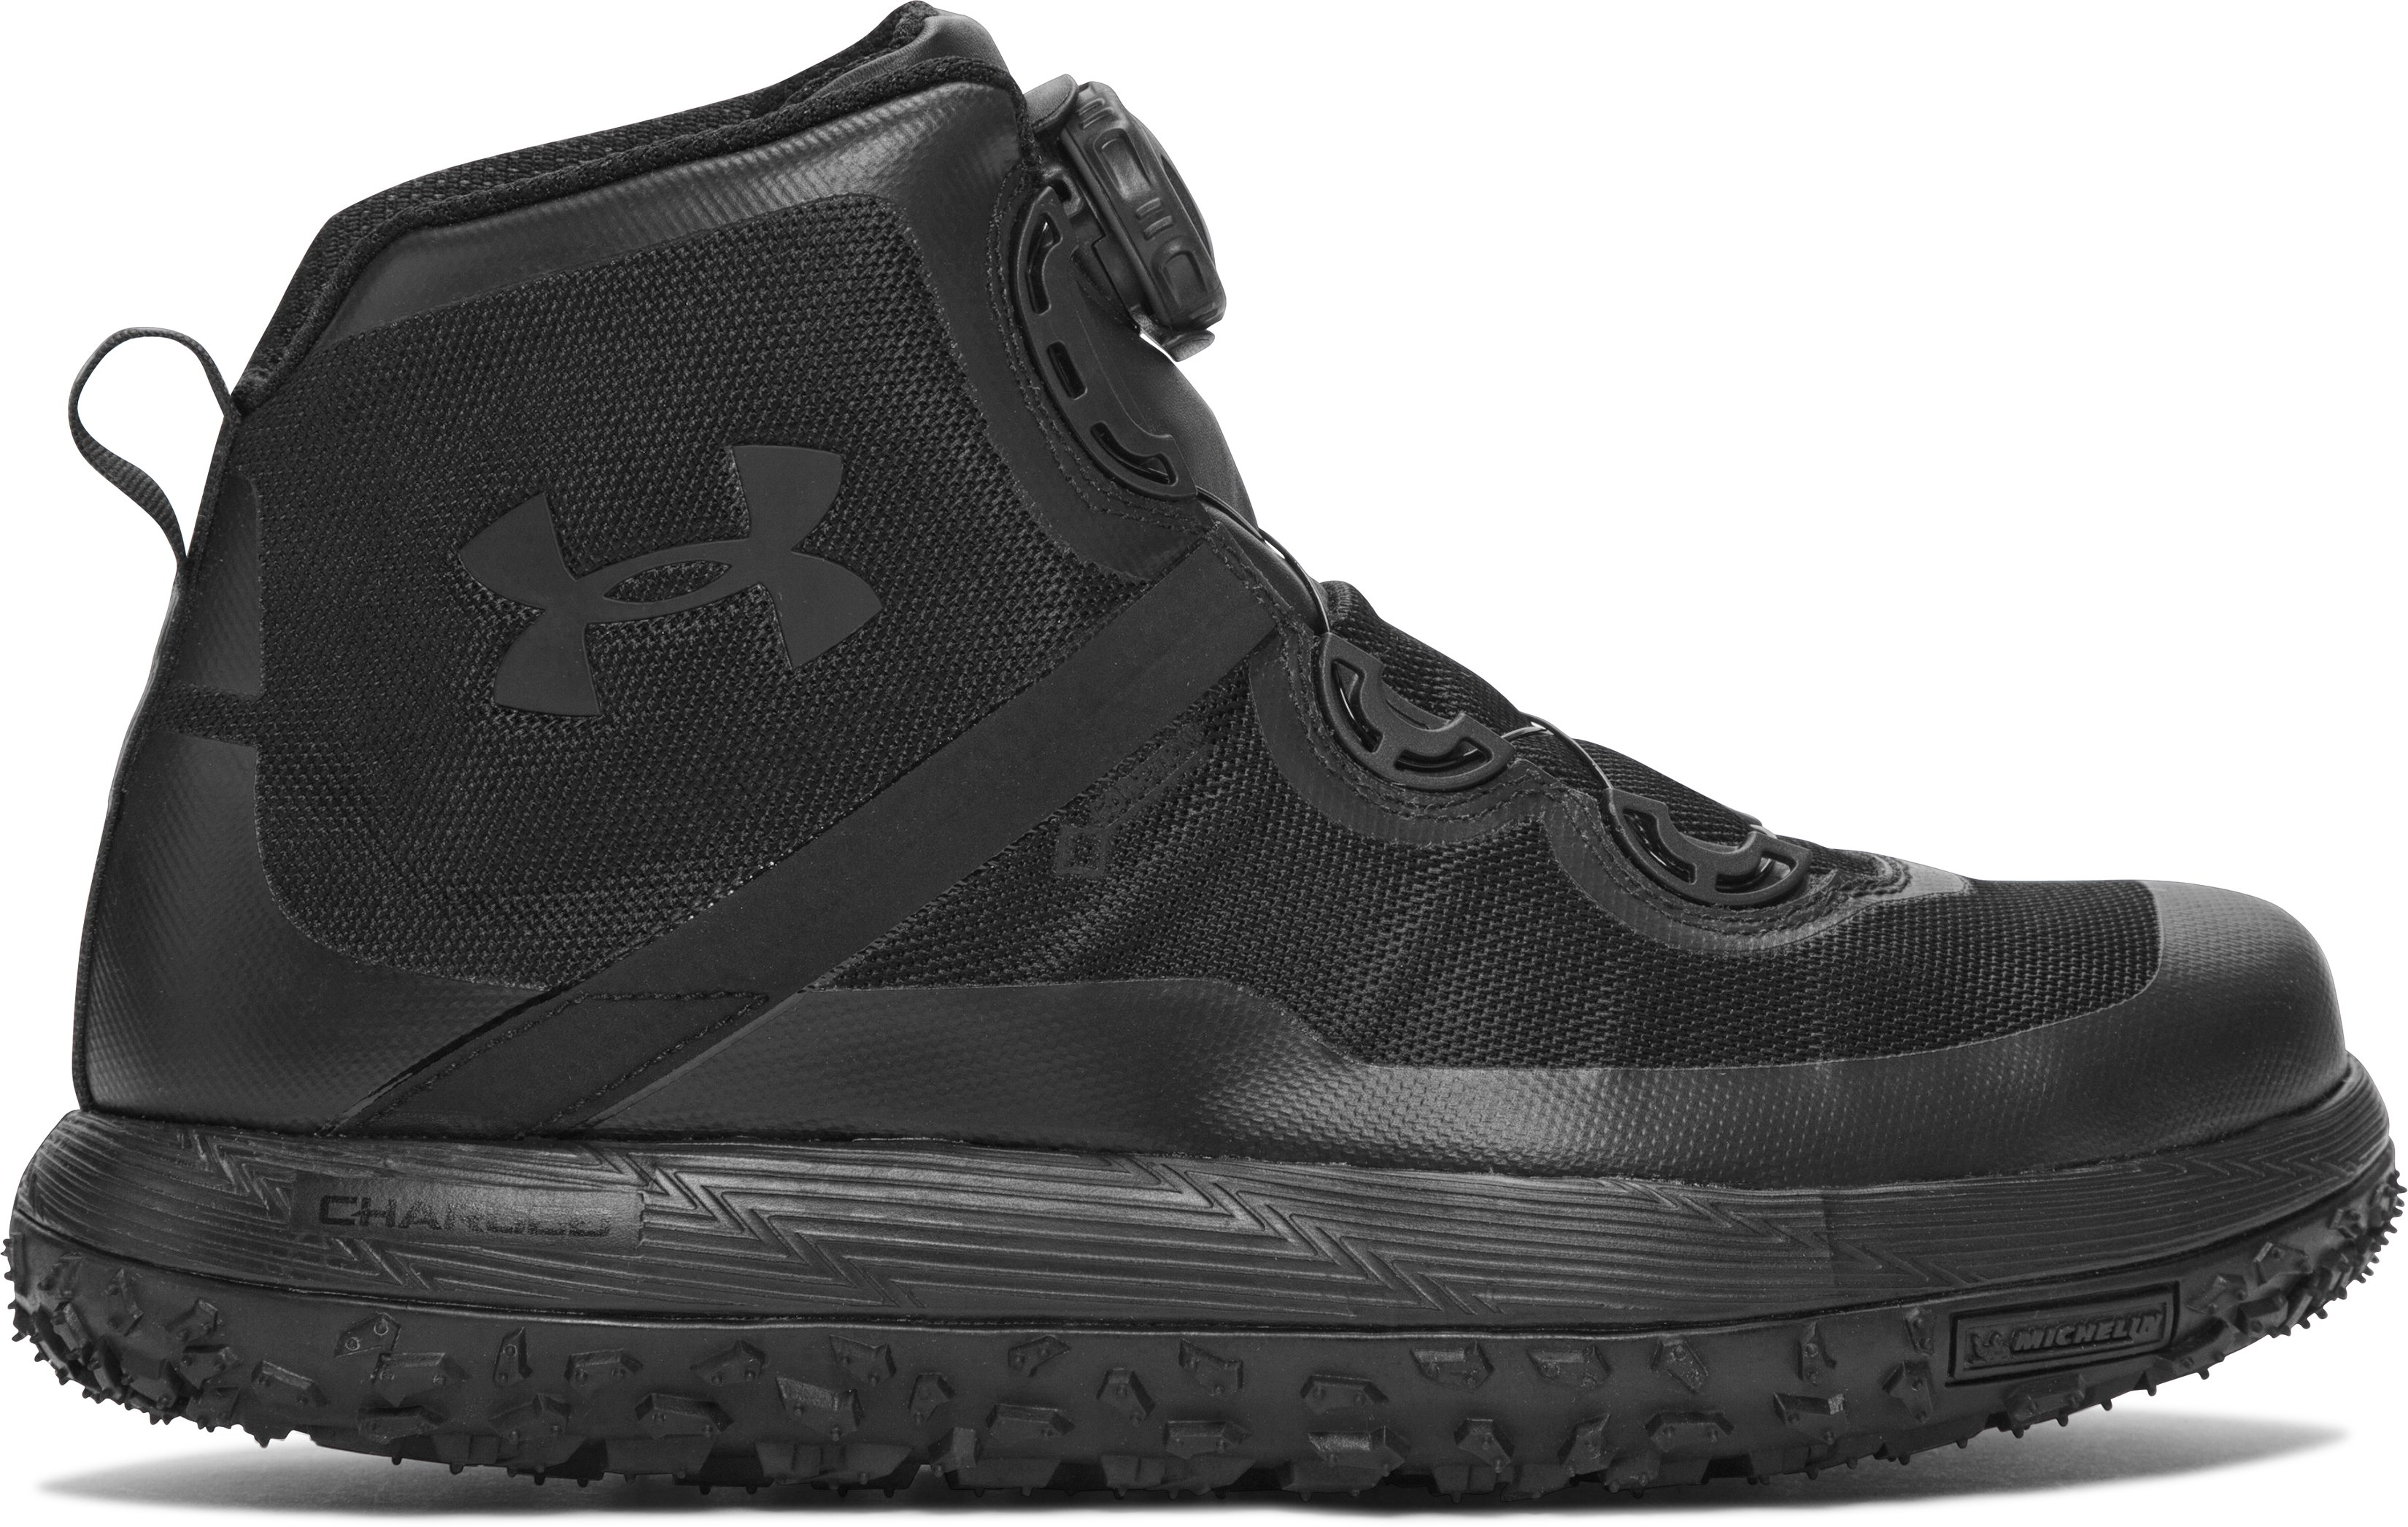 black hiking boots Men's UA Fat Tire GORE-TEX® Hiking Boots Achilles relief !...Best boots...Outstanding Product